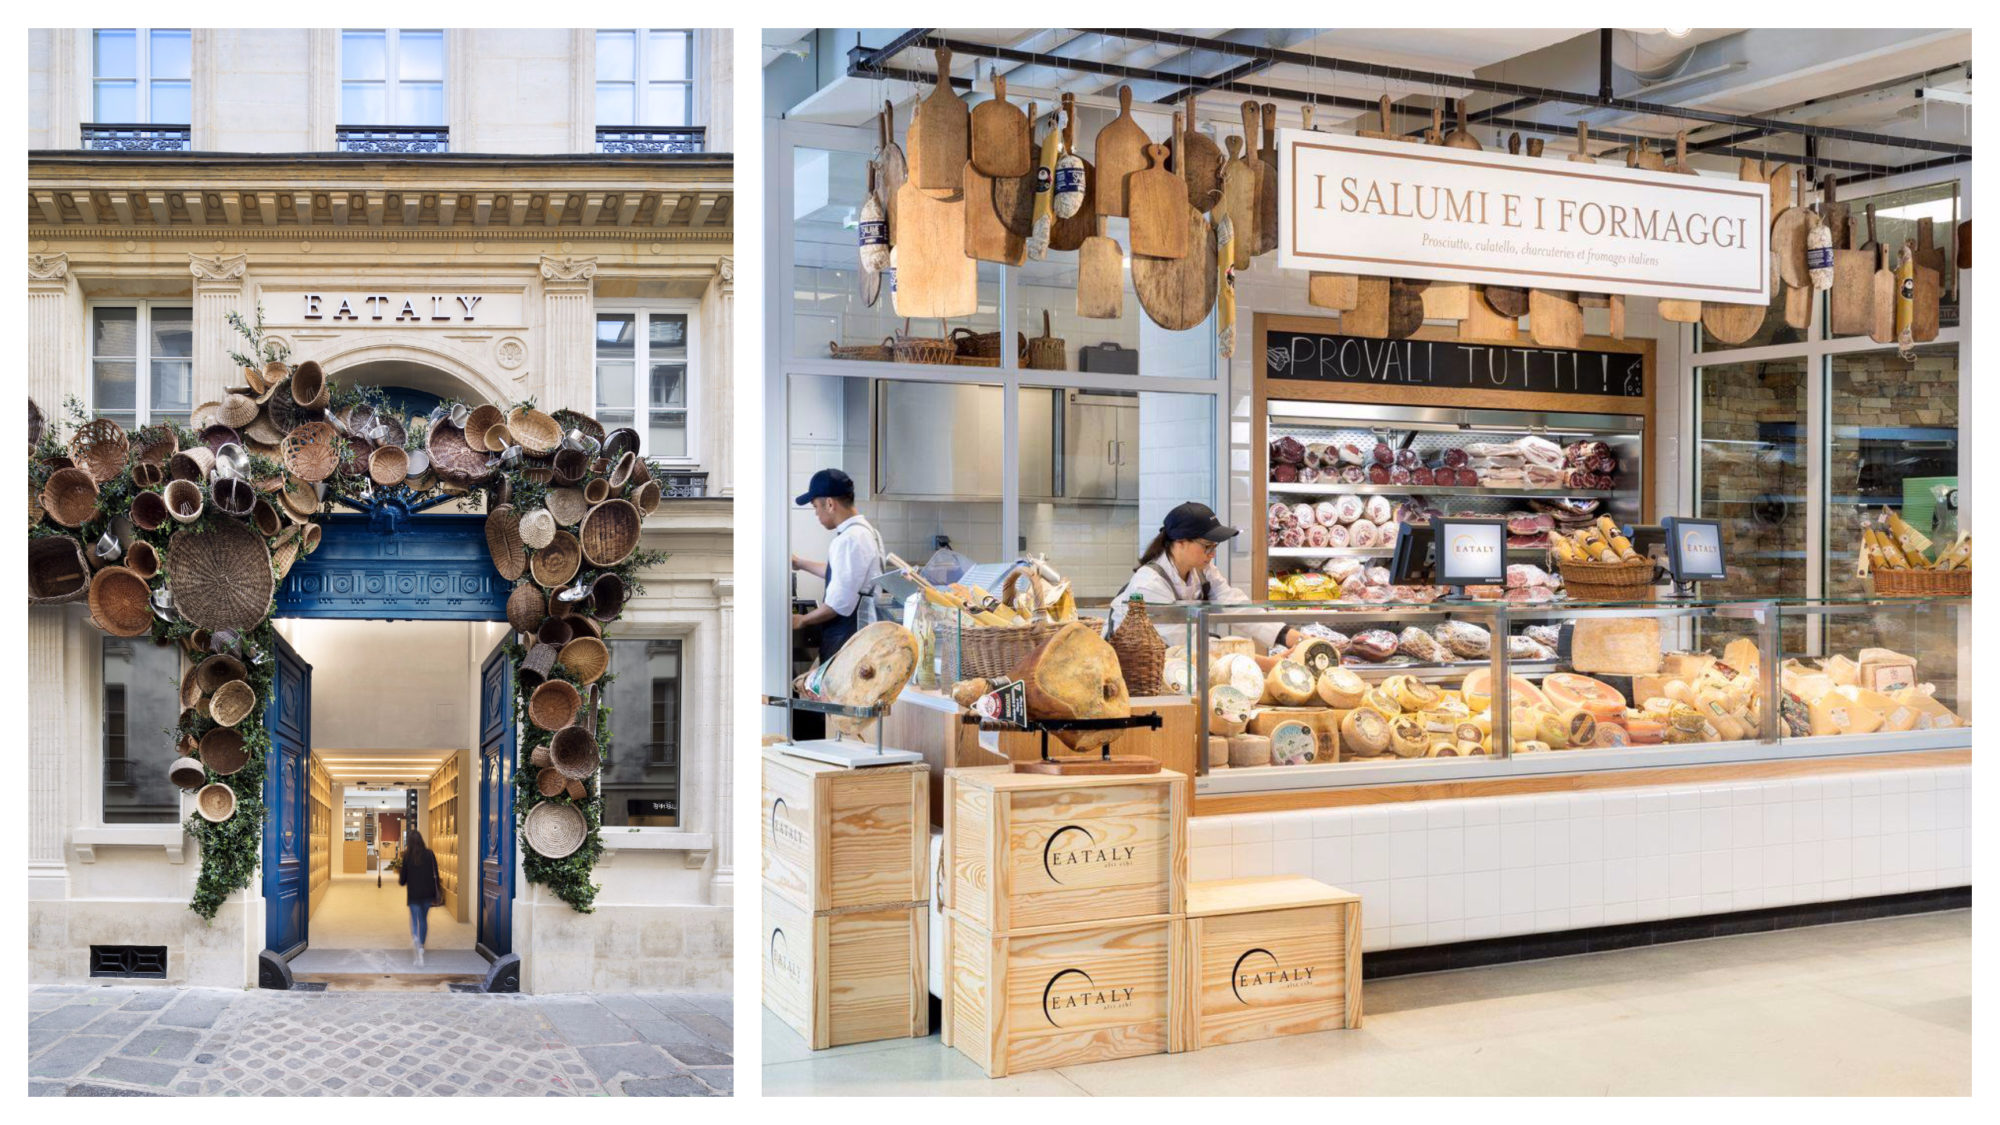 The entrance of Eataly, the epicenter for Italian food in Paris, decorated with straw baskets hanging on the wall (left). A salami and cheese stall with a counter brimming with different cheeses (right).